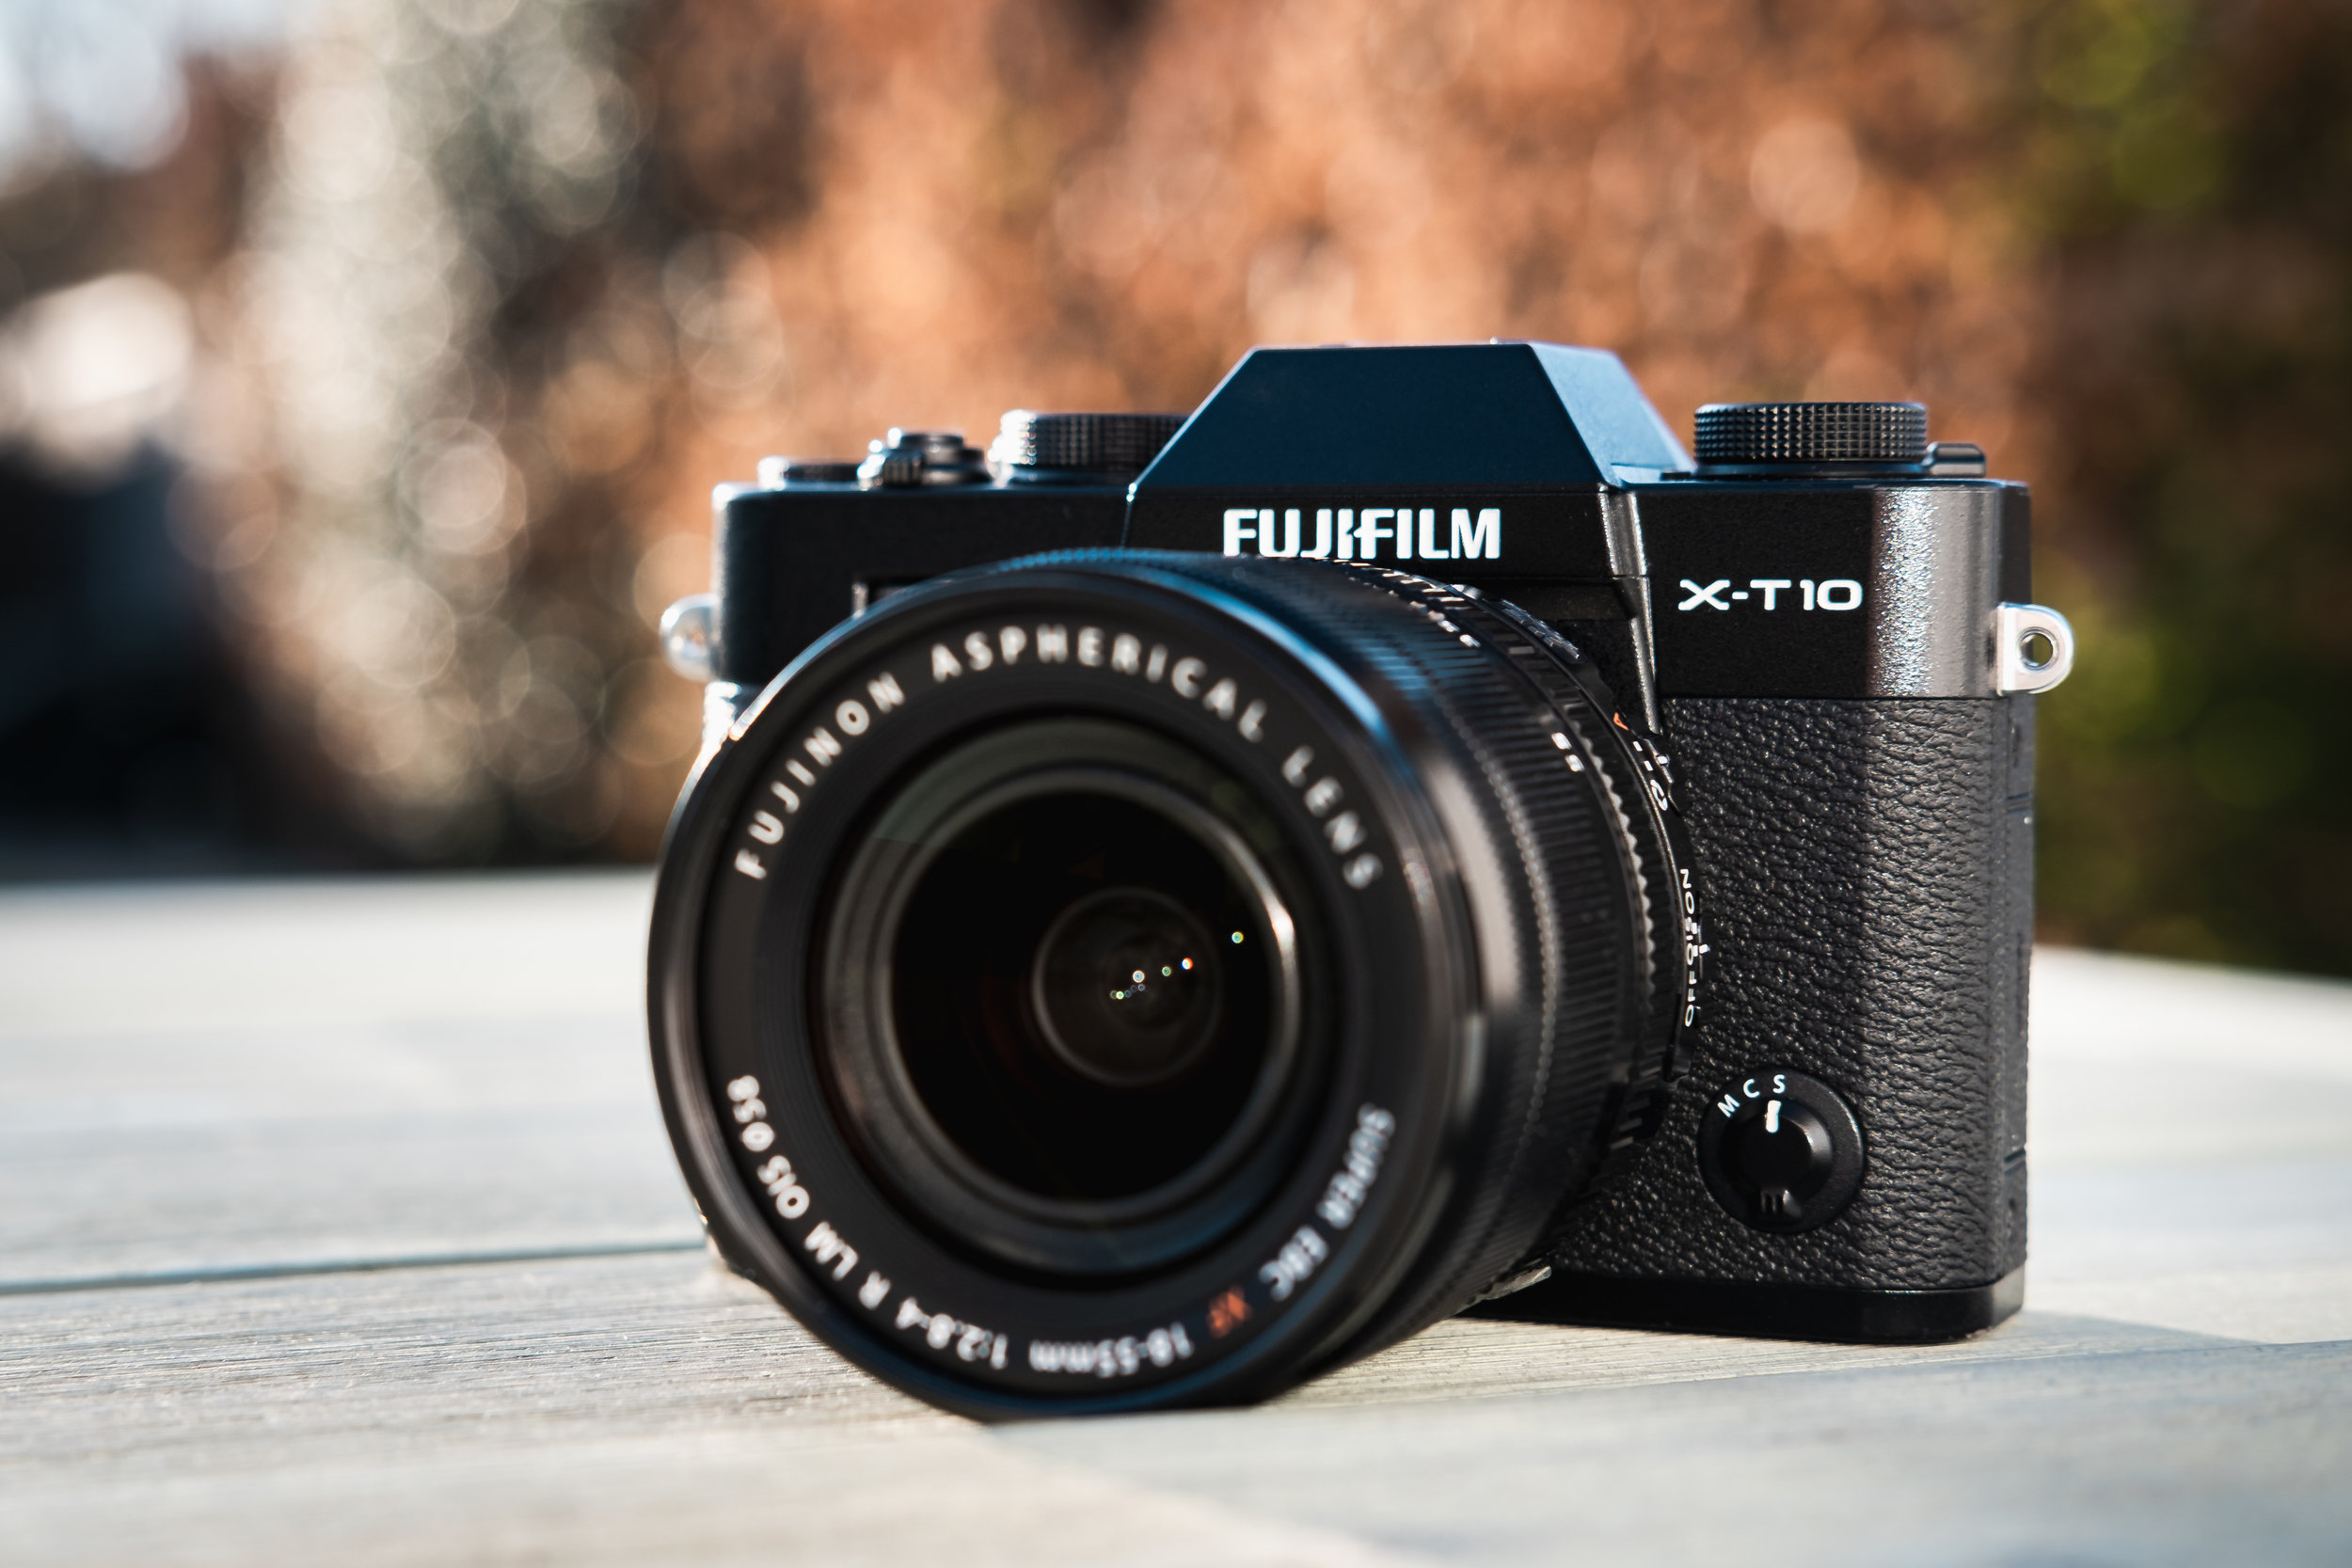 The original combo! My Fujifilm X-T10 Camera and XF18-55mm lens.